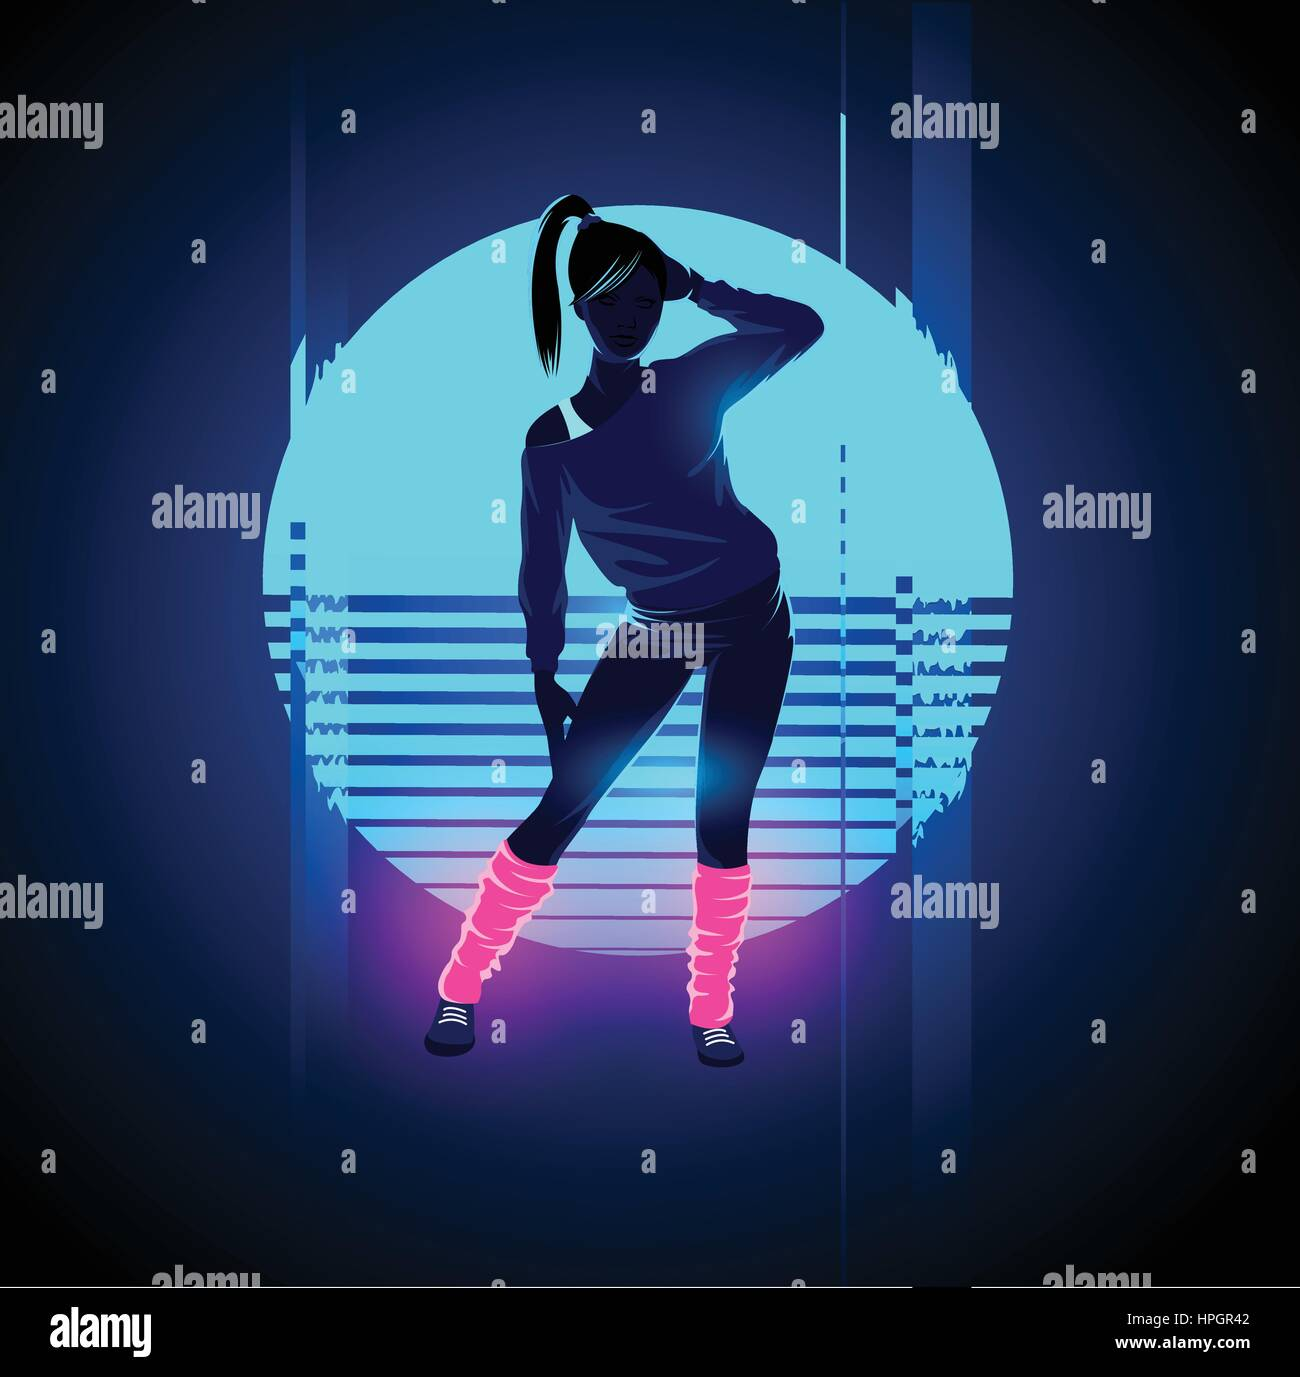 Retro 1980's glowing neon dancing lady with glitch sunset background. Vector illustration - Stock Vector